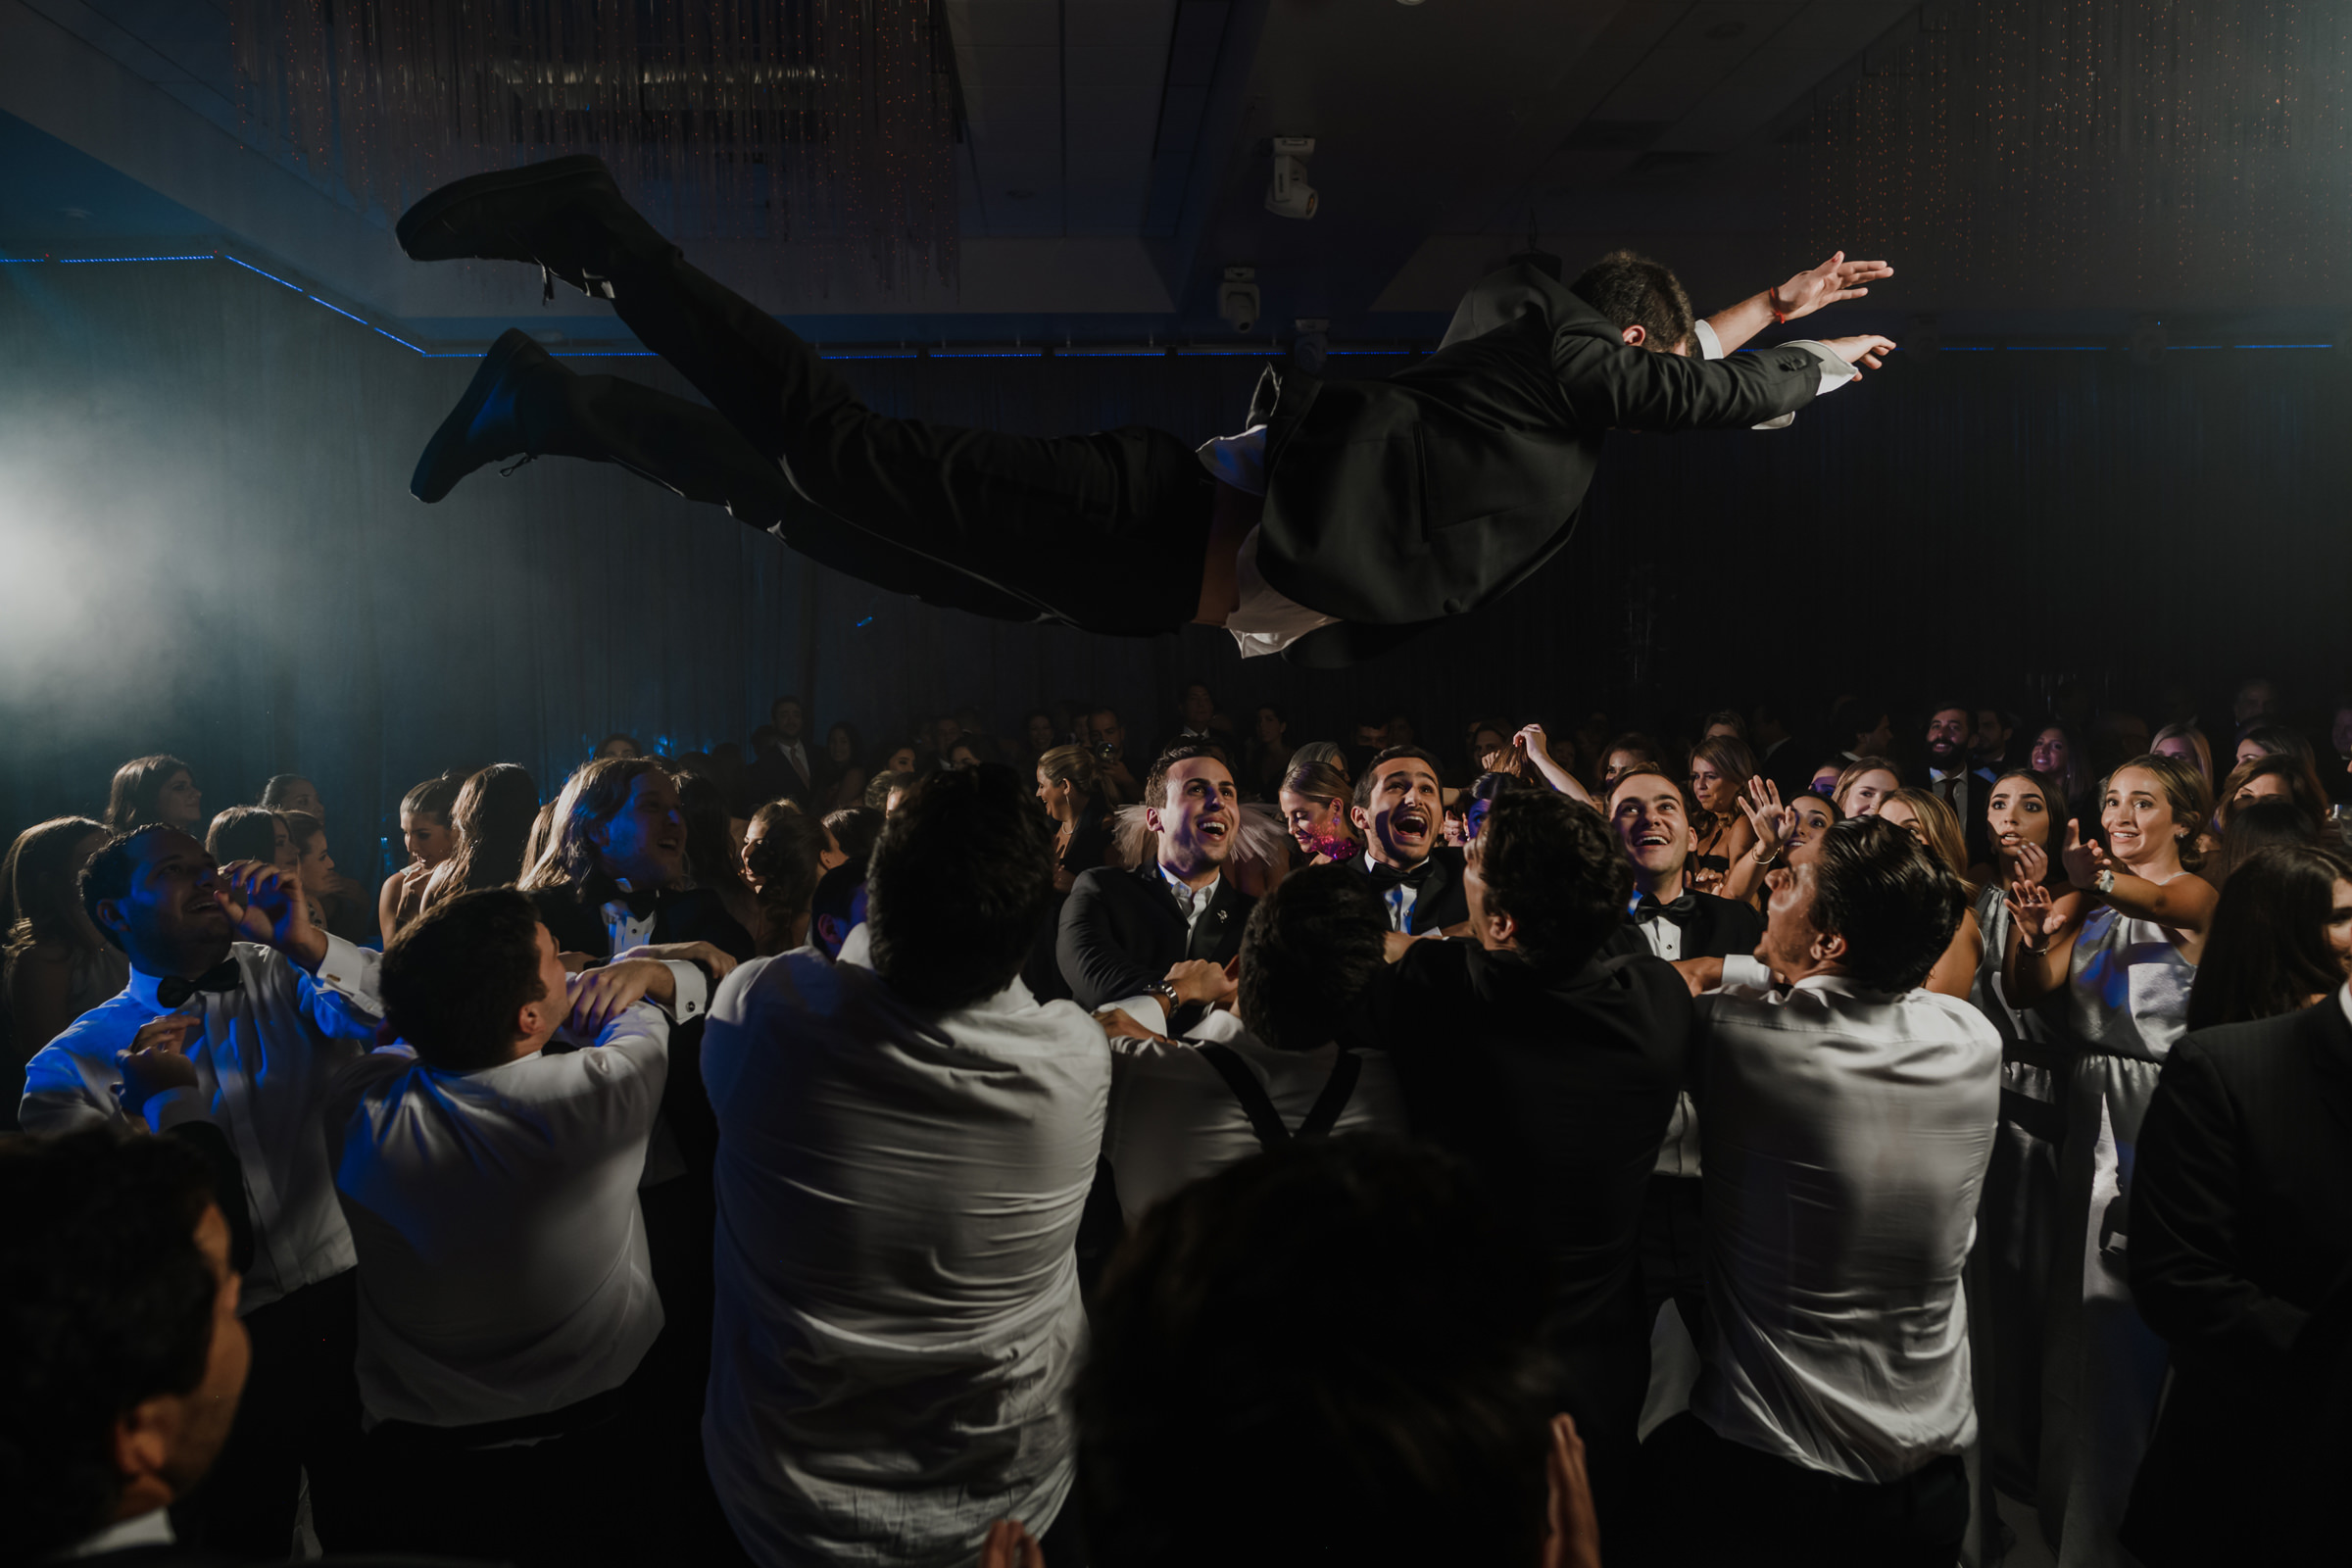 Groom flies into mosh pit at reception - photo by El Marco Rojo